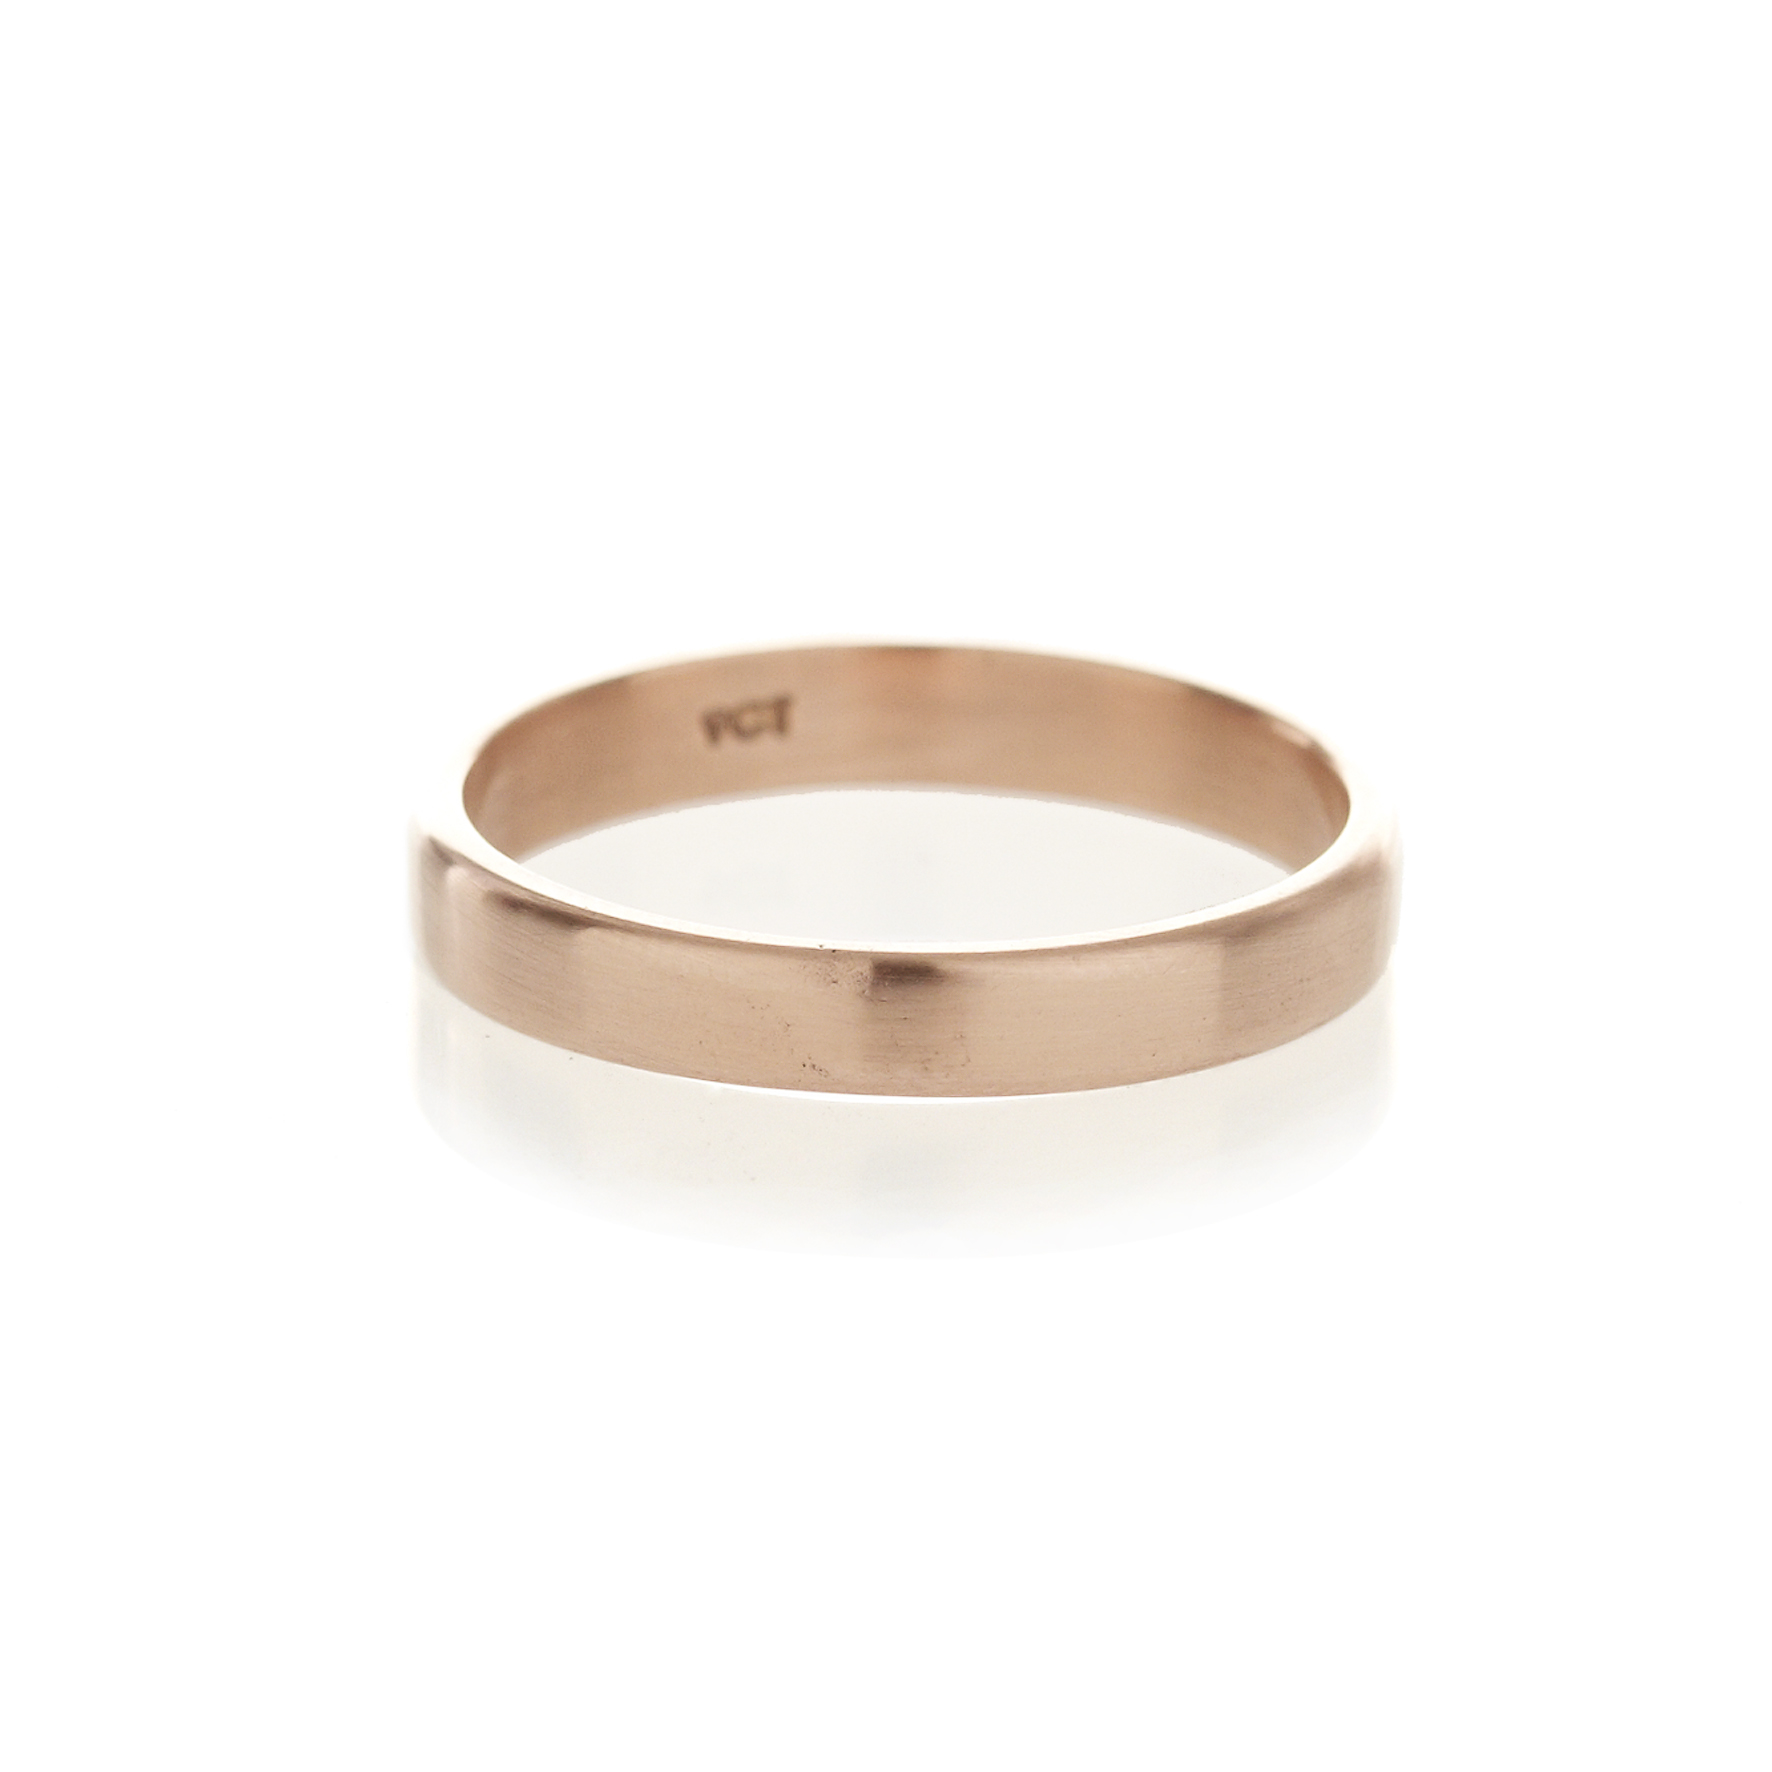 Rose gold men's band